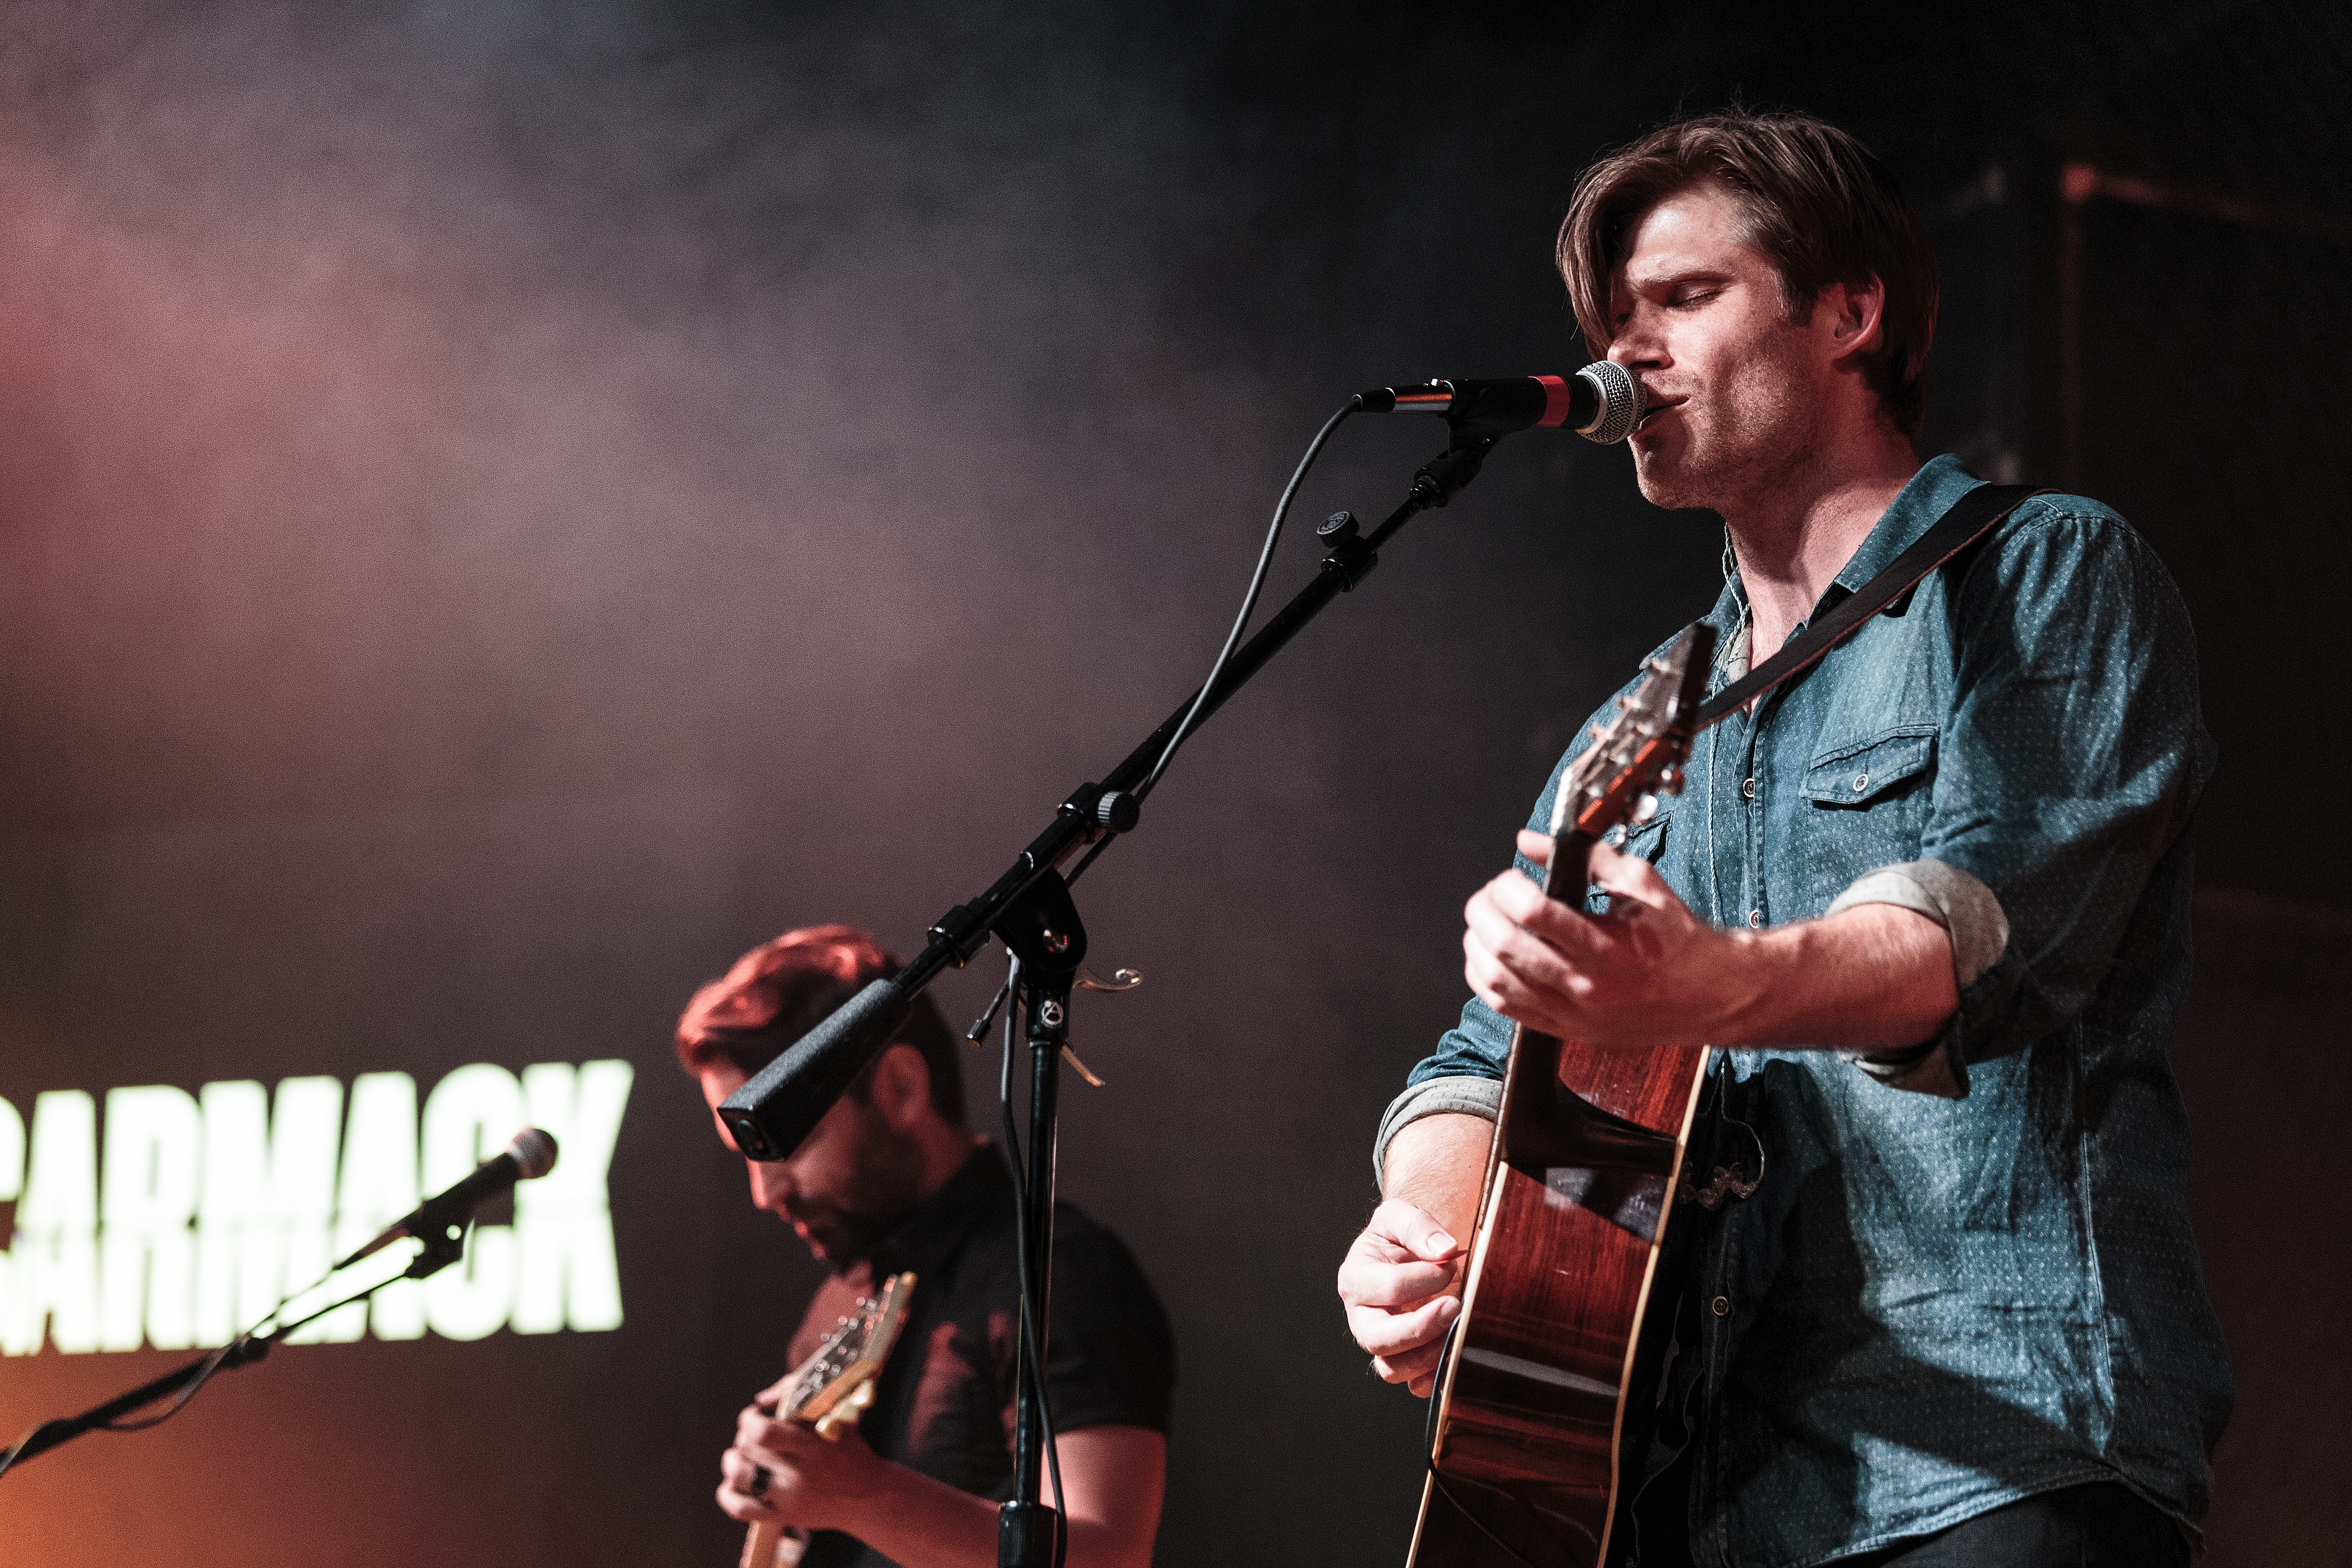 Rip nashville star chris carmack reveals how the show rip nashville star chris carmack reveals how the show inspired his songwriting acoustic guitar hexwebz Image collections